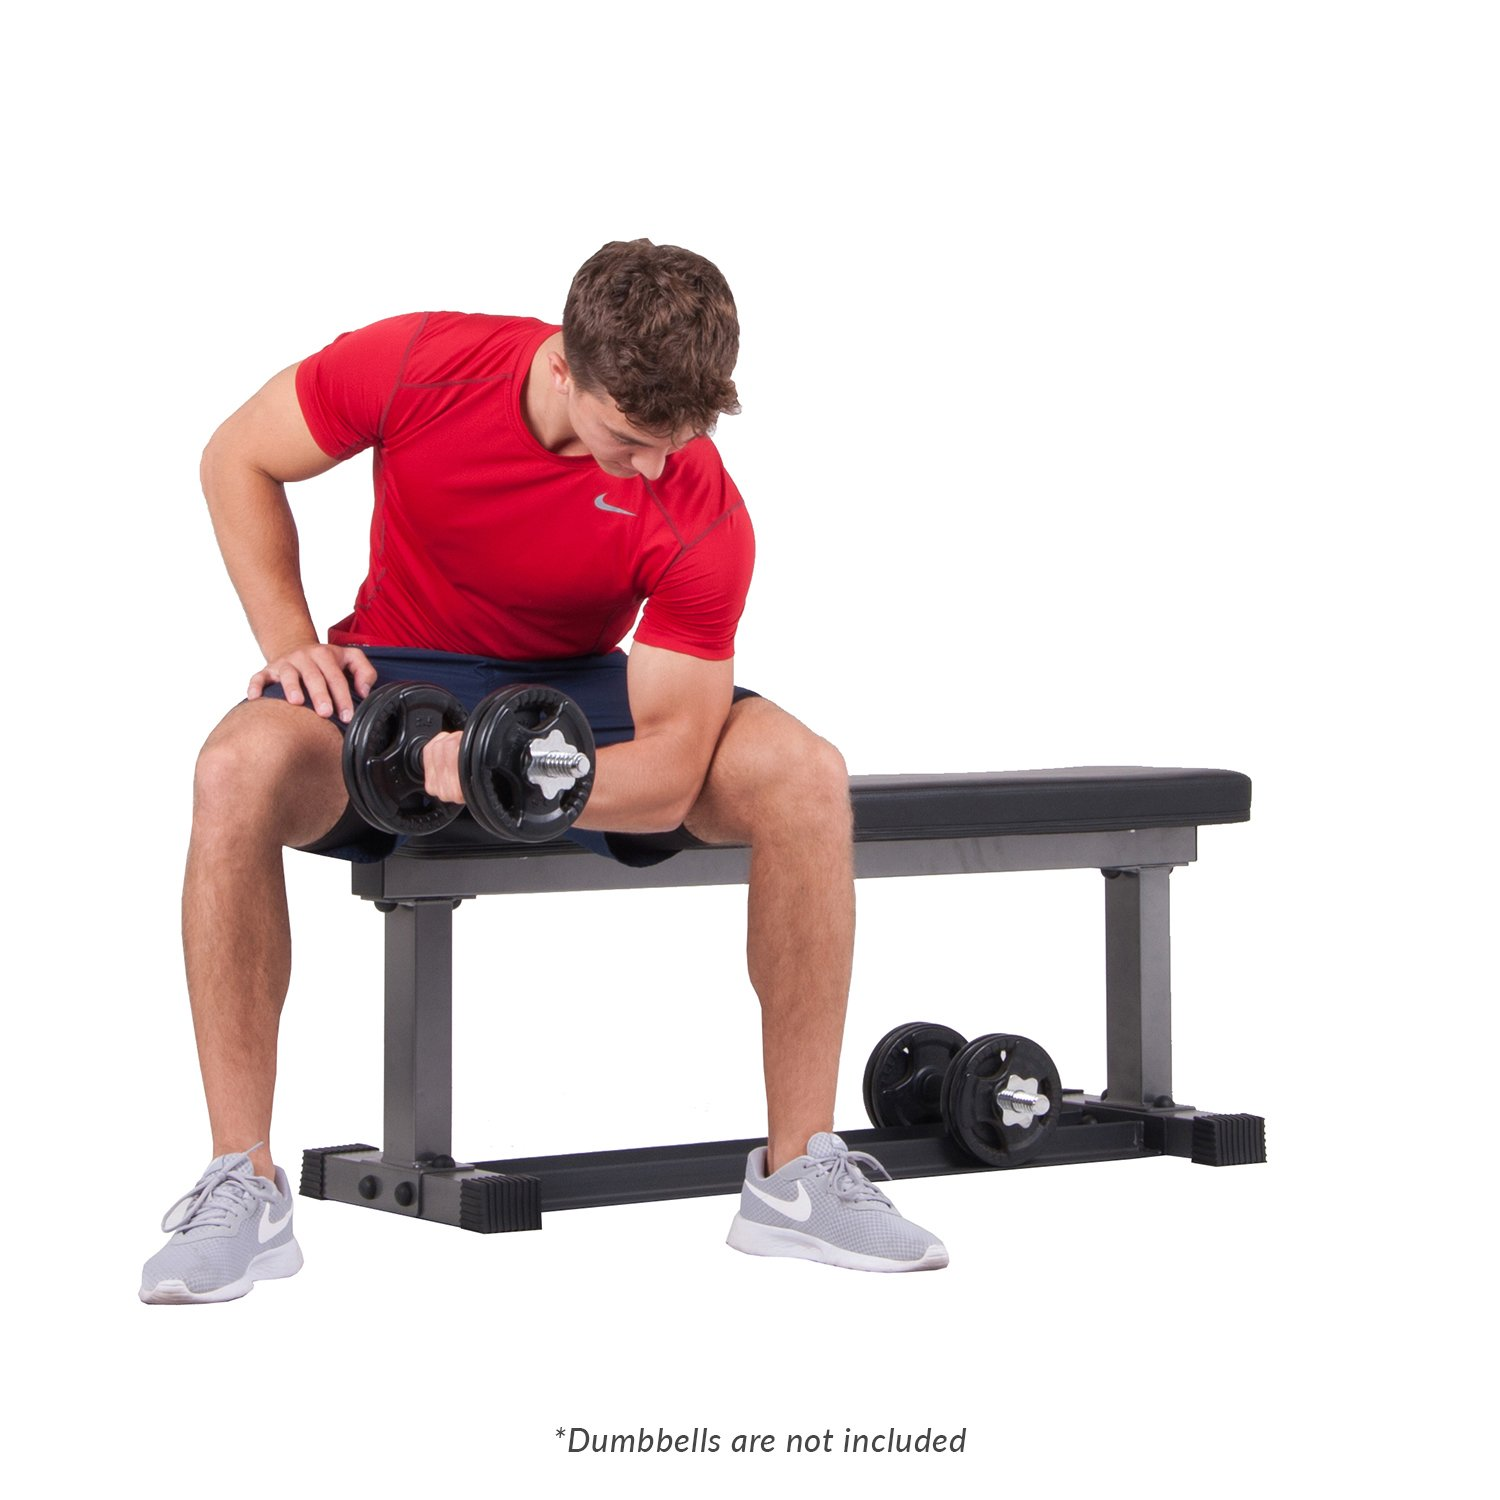 Body Power BUB850 1000 lbs. Weight Bench with Built in Storage Rack